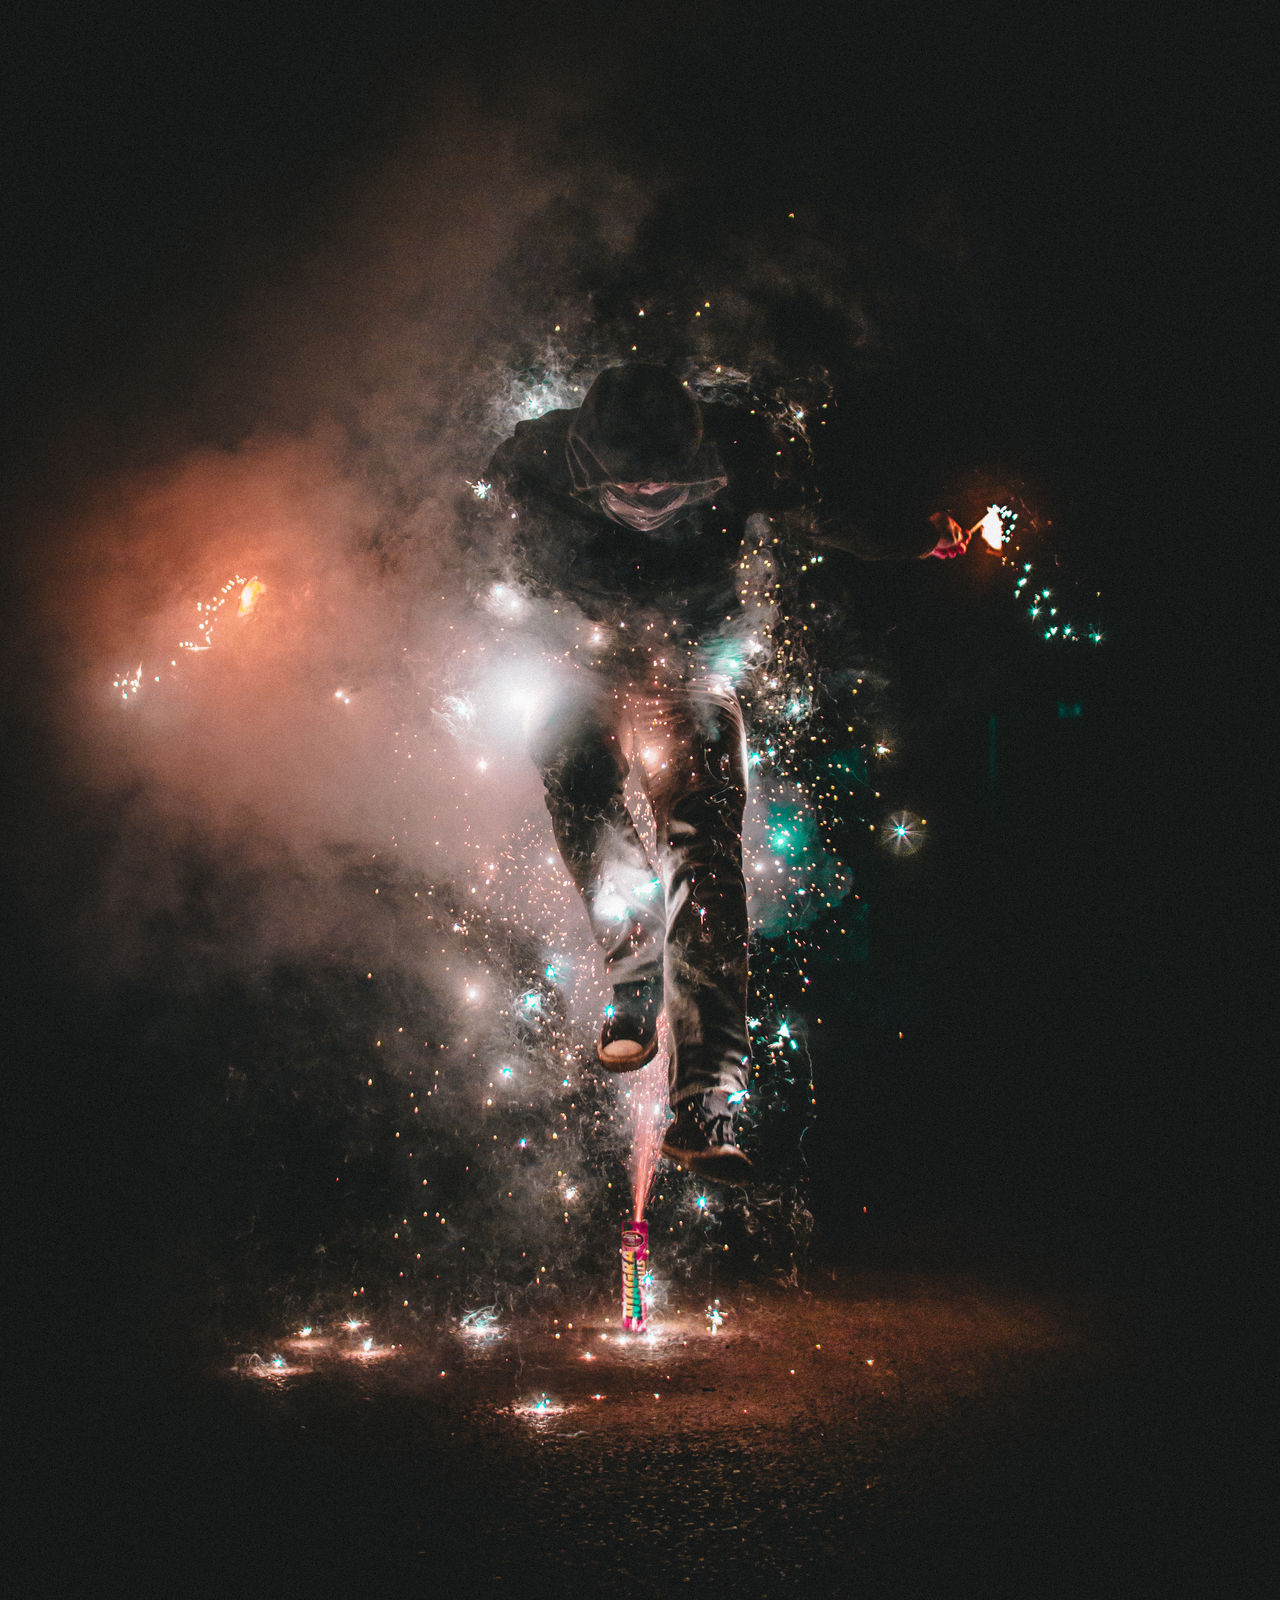 Fireworker night illuminated sky Celebration no people outdoors Event firework - man made object star - space Galaxy young adult photographer City sparks sparks flying